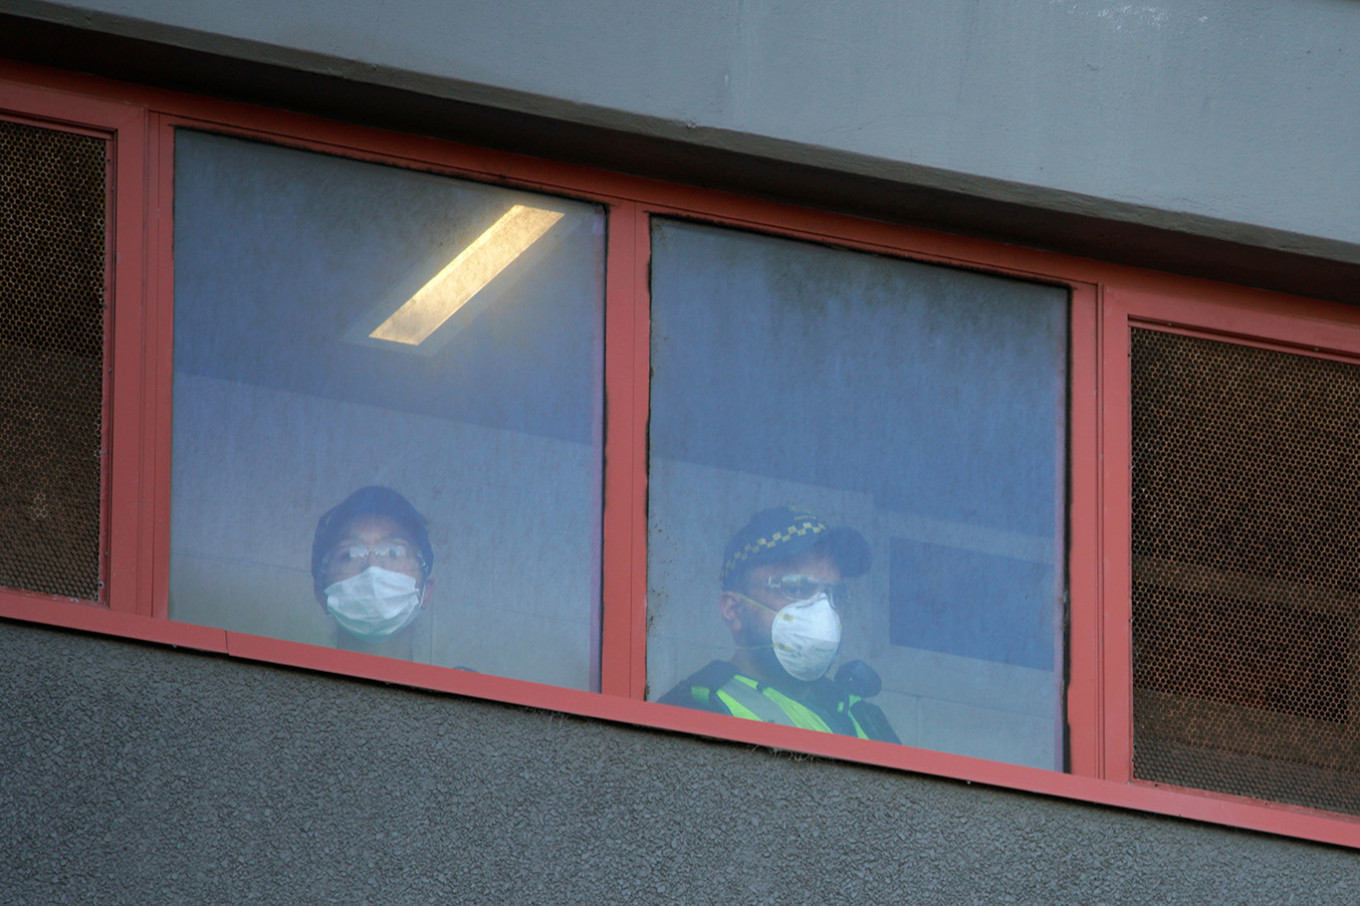 Open the windows to curb Covid spread: experts